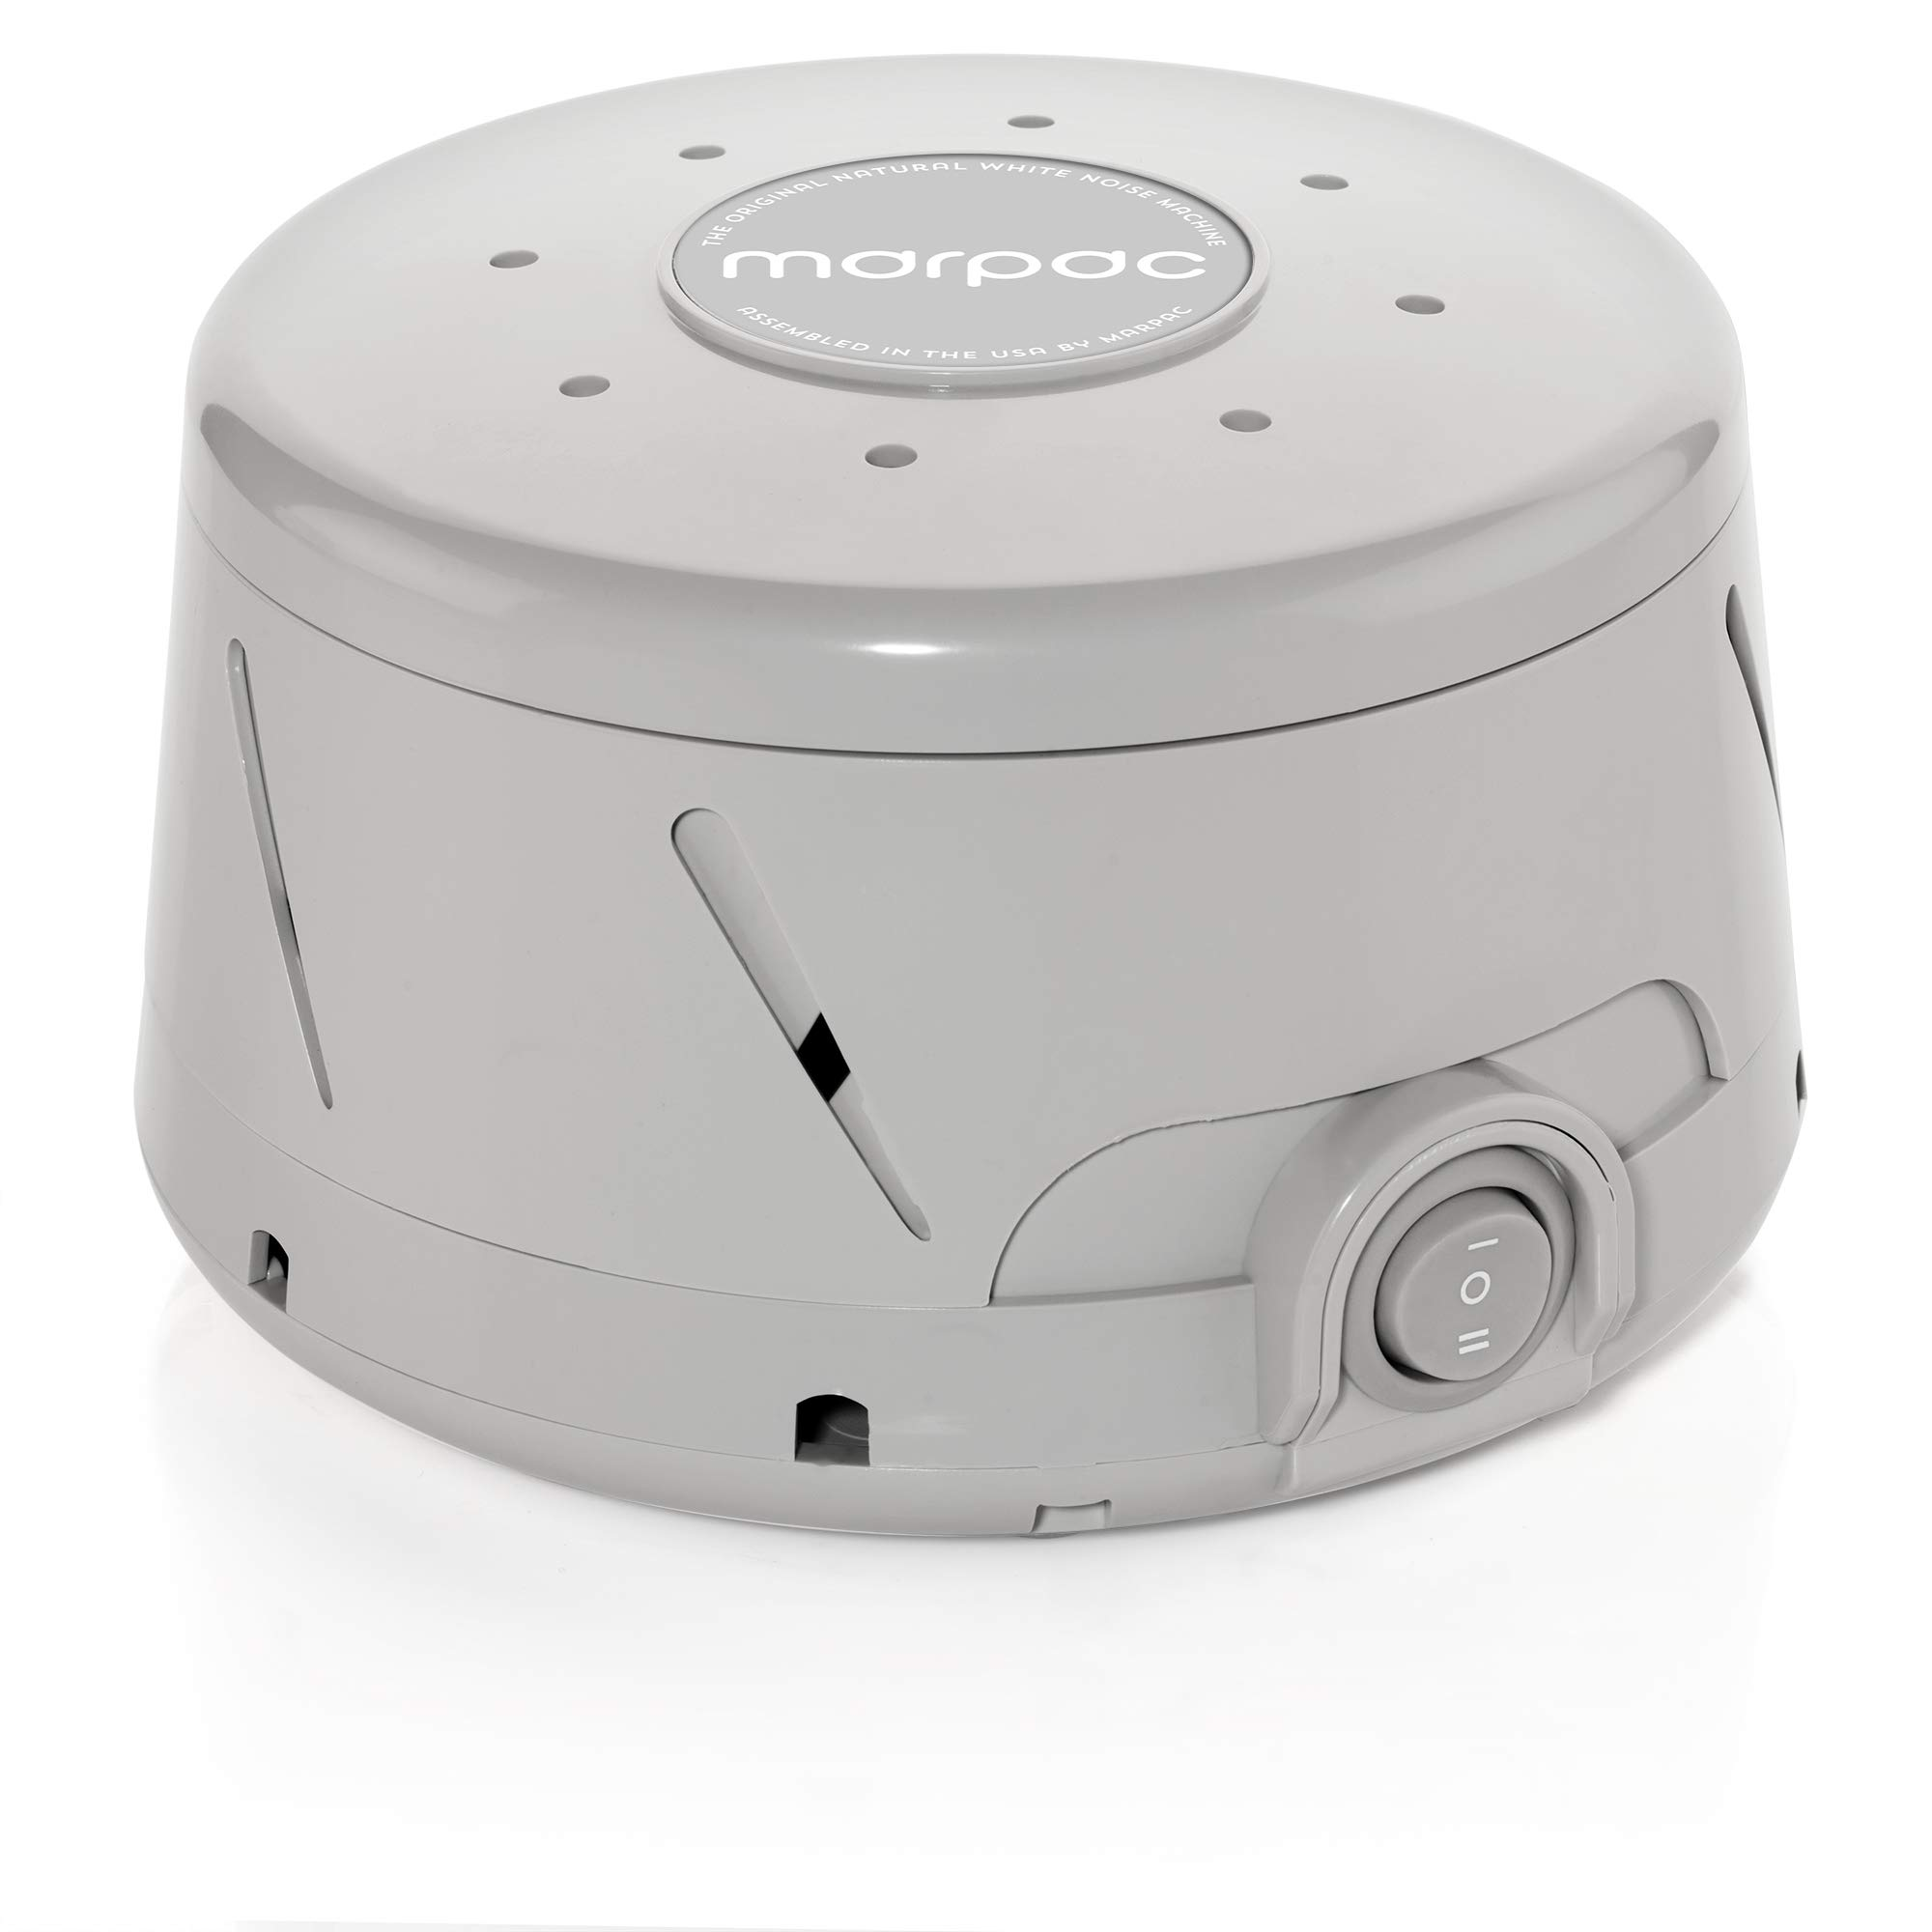 Marpac Dohm Classic (Gray)   White Noise Machine   101 Night Trial & 1 Year Warranty   Soothing Sounds from a Real Fan Helps Cancel Noise While You Sleep   for Adults & Children